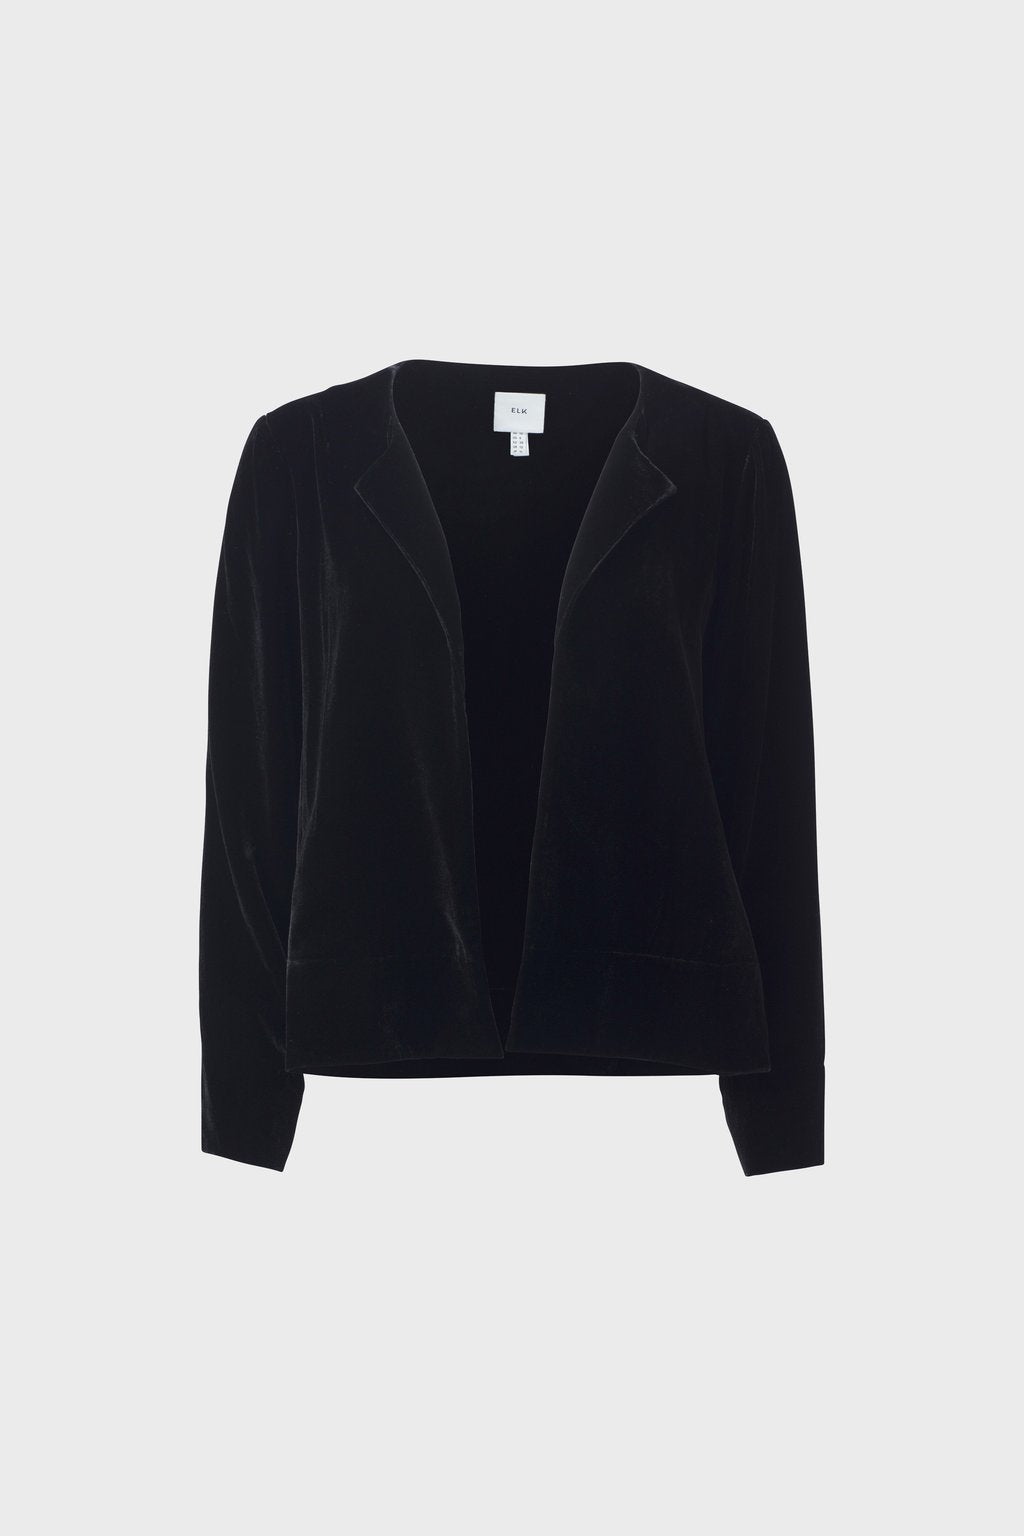 Luxe Velvet Jacket - Elk The Label